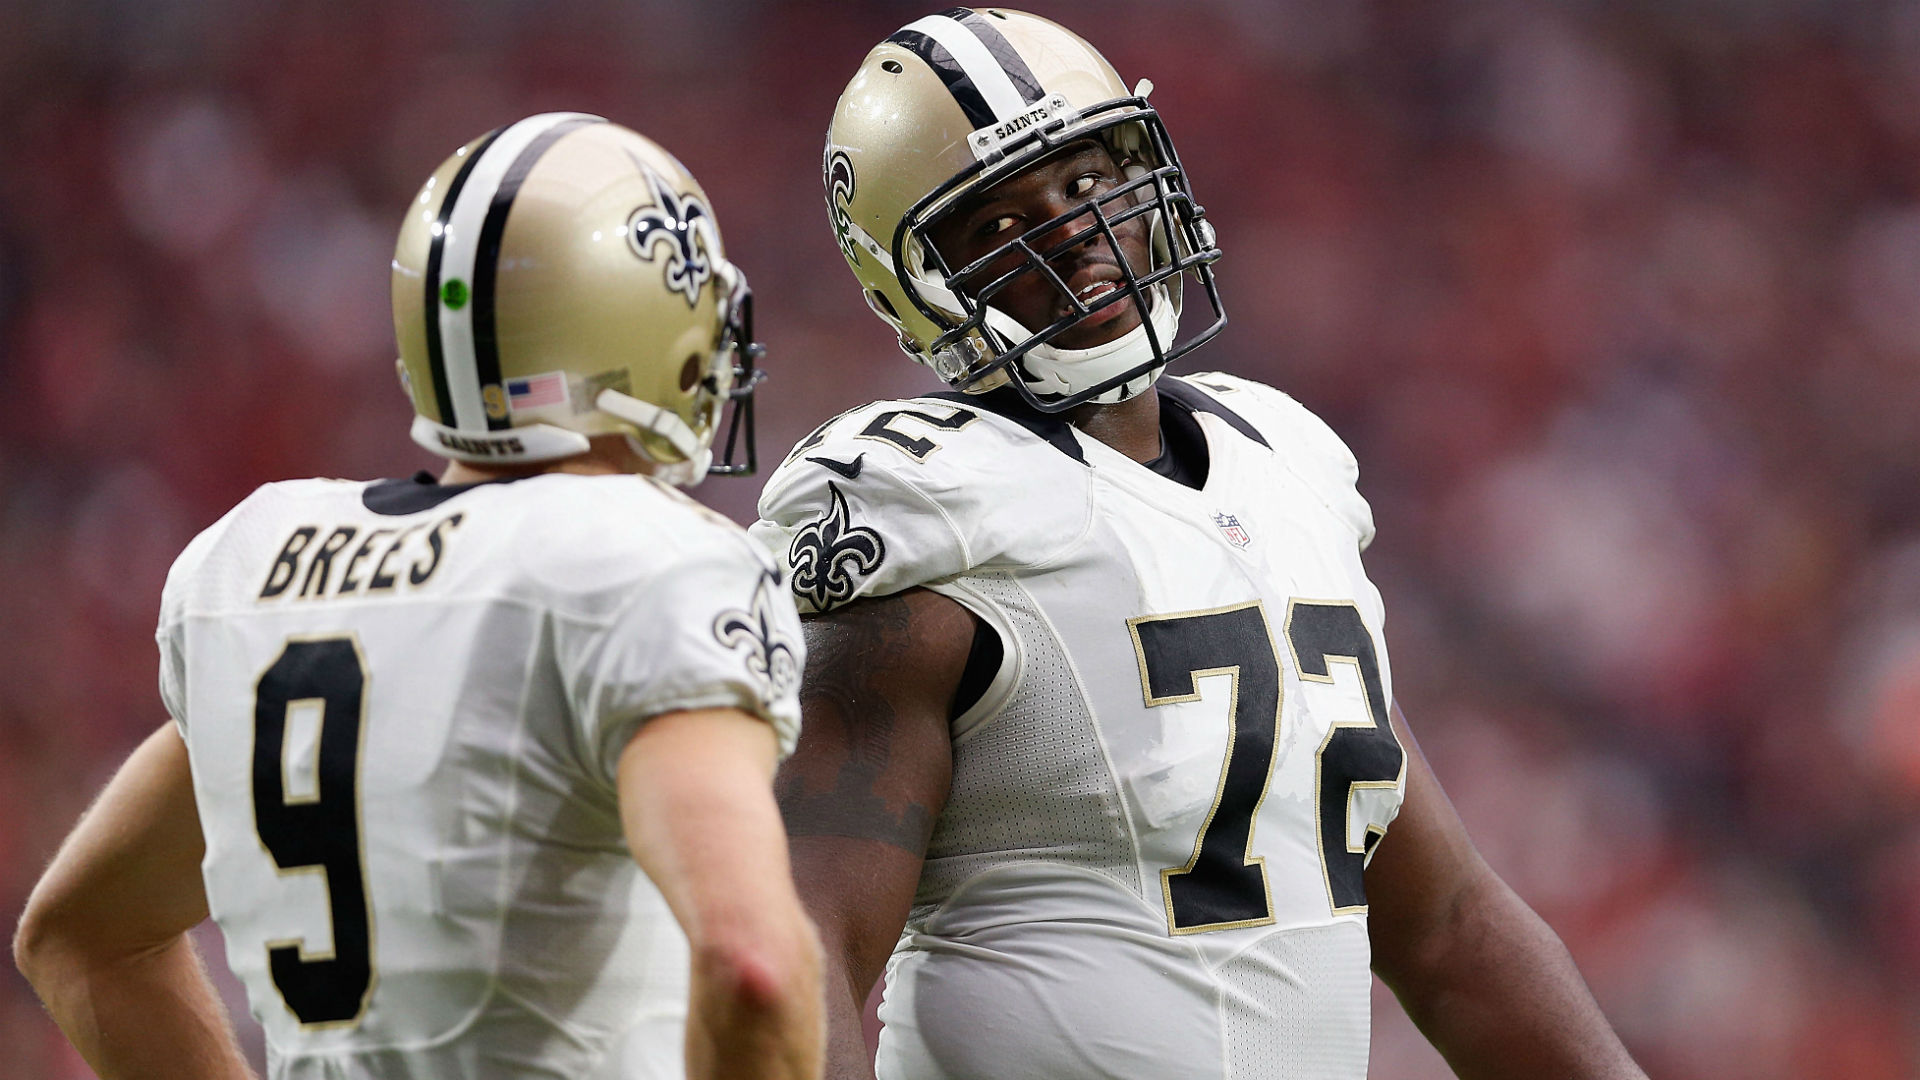 Saints LT Terron Armstead out 4-6 months with torn labrum